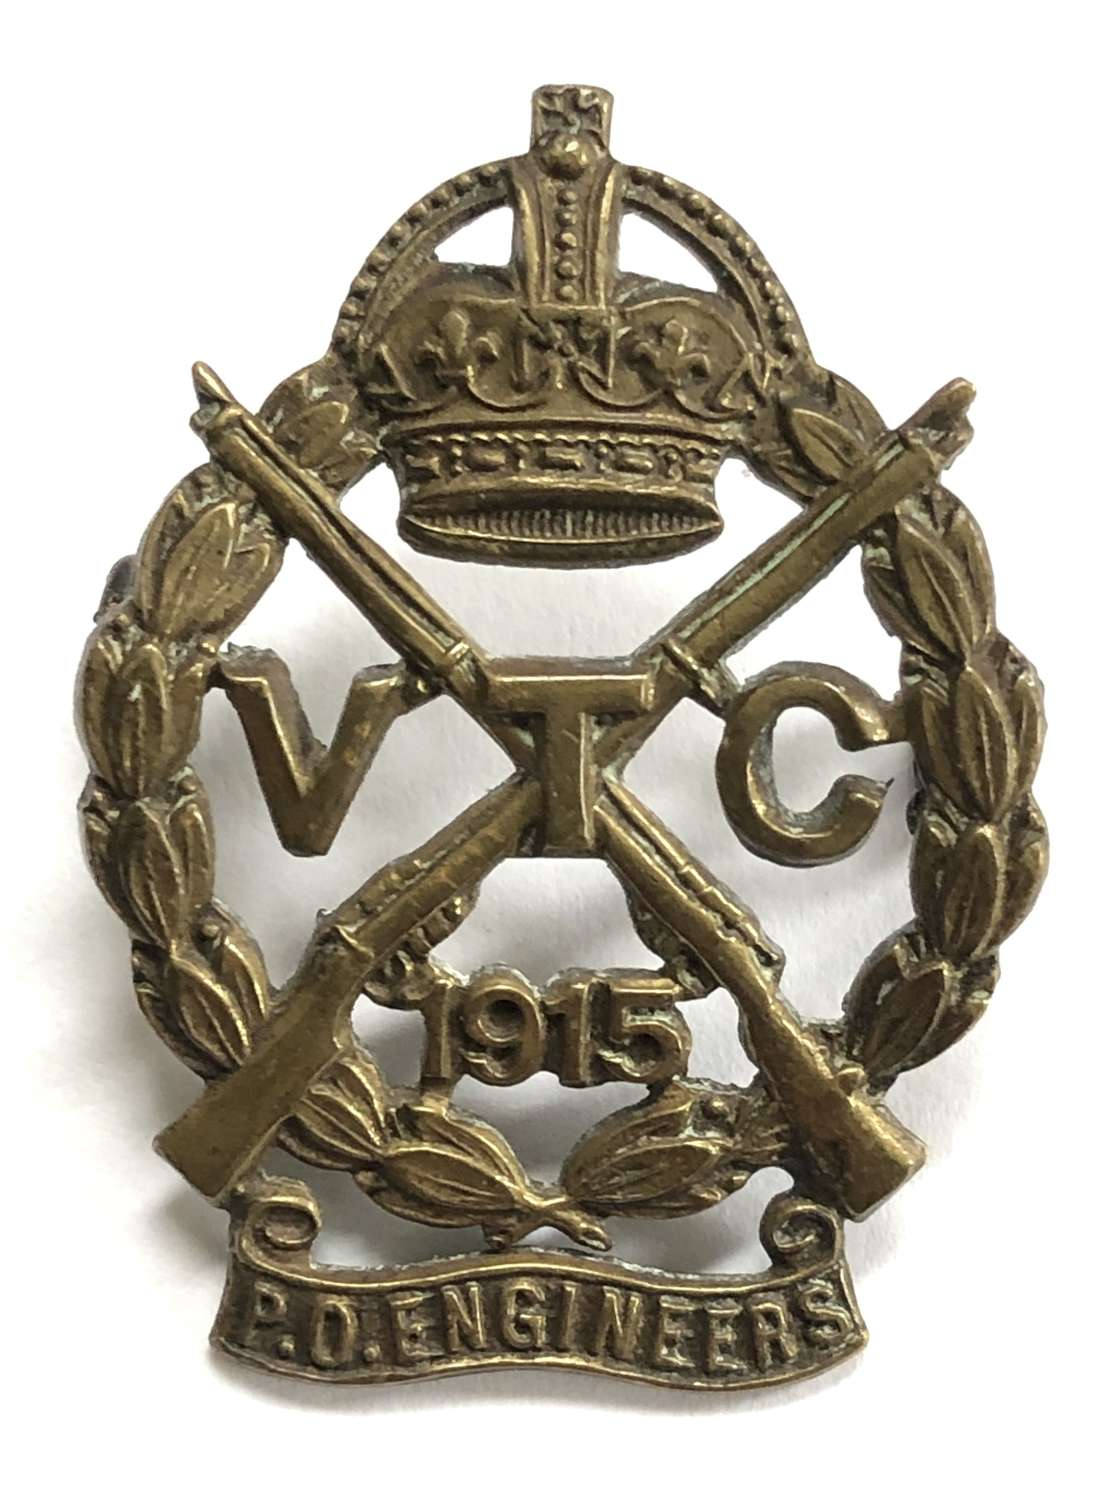 Post Office Engineers 1915 VTC cap badge by Gaunt